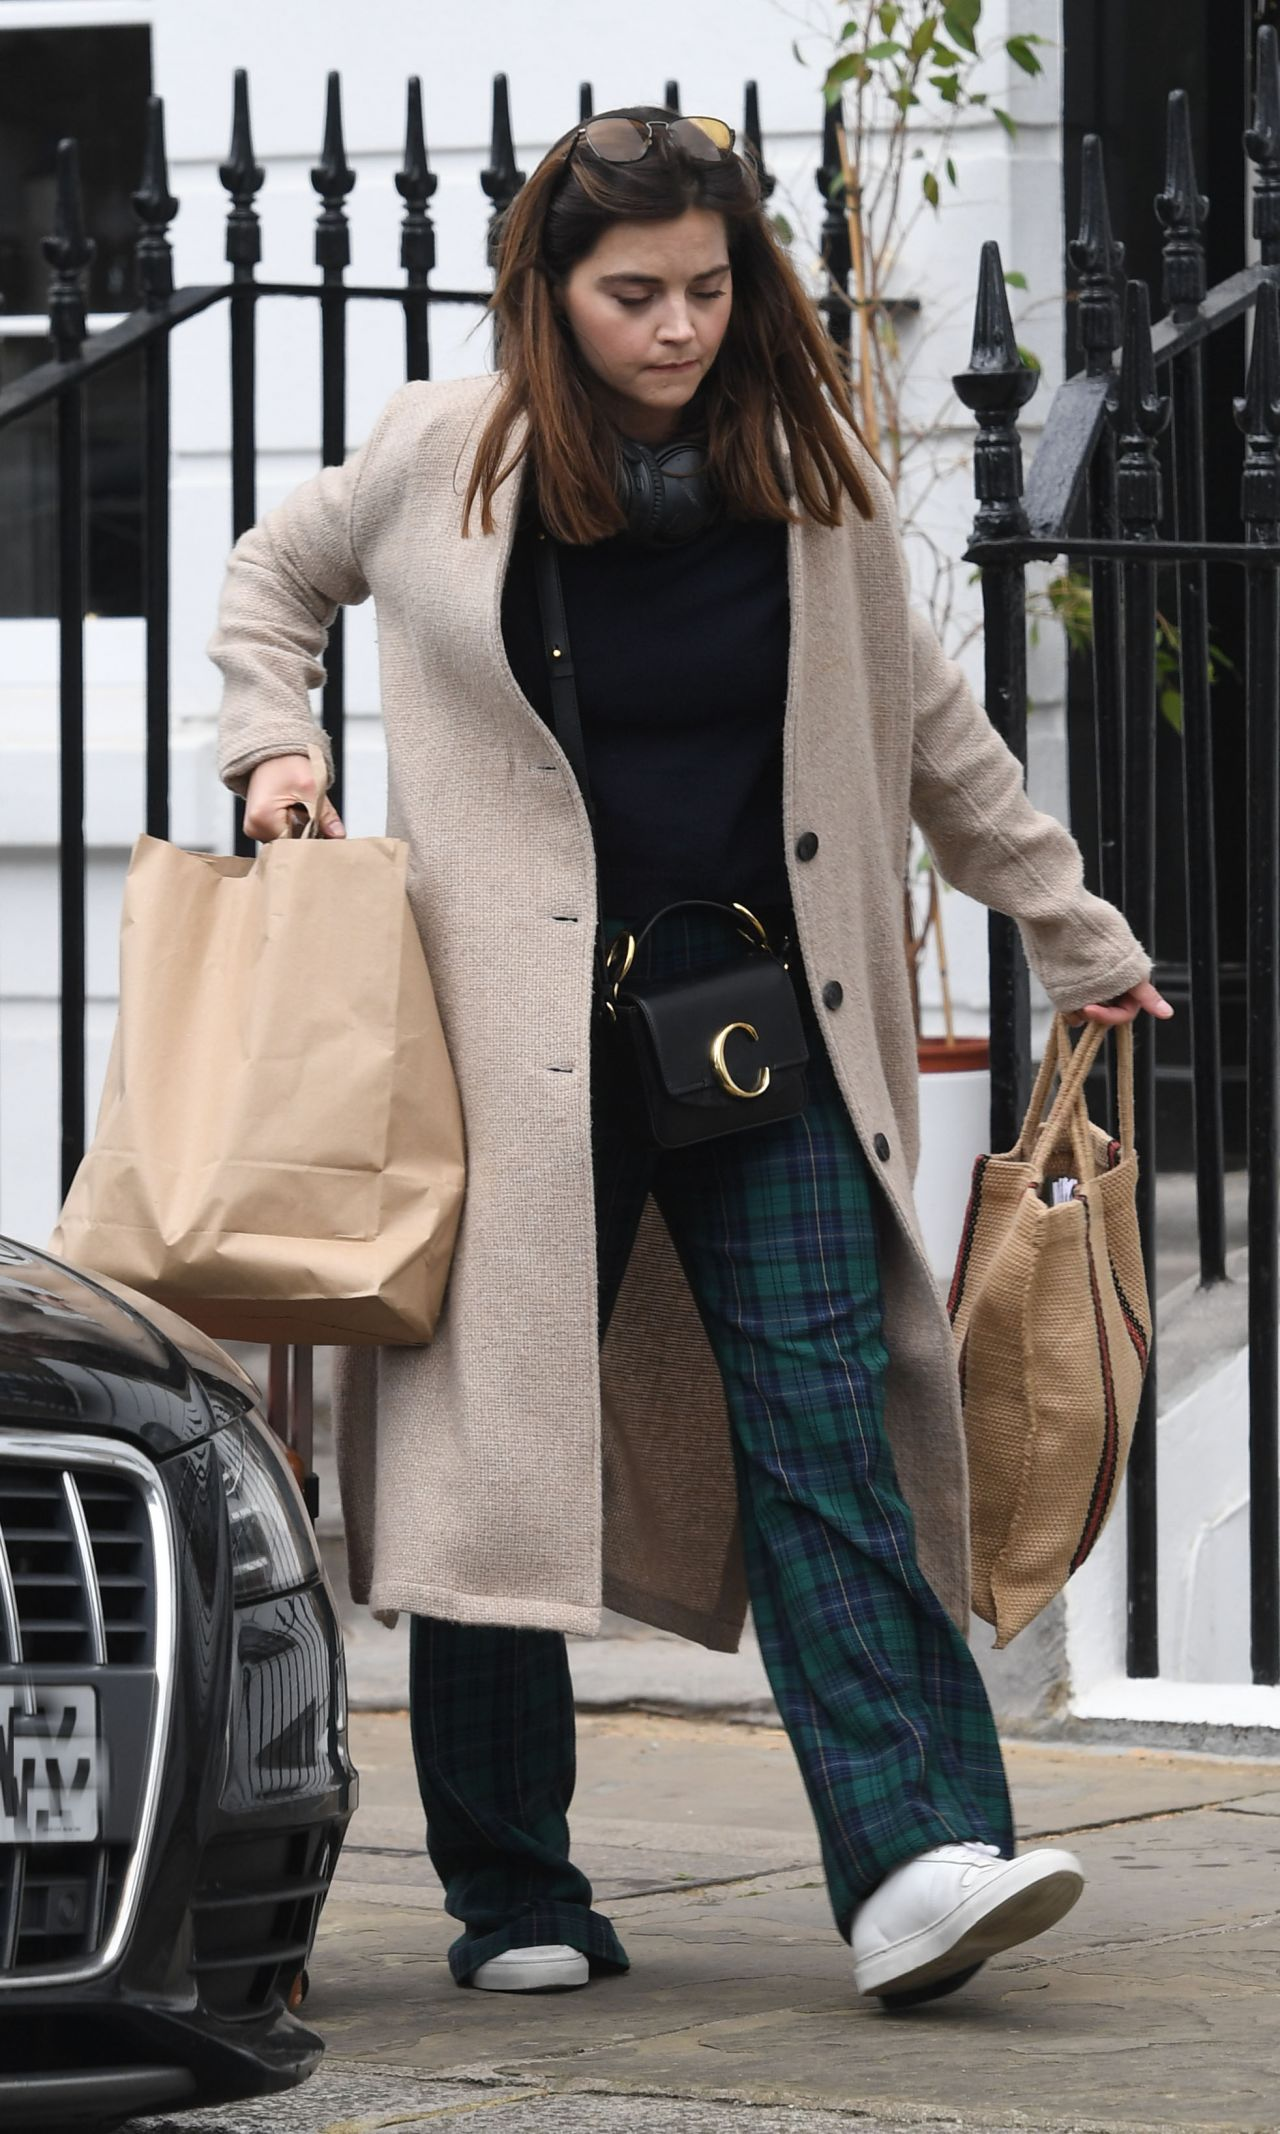 jenna coleman casual style  london 04302019